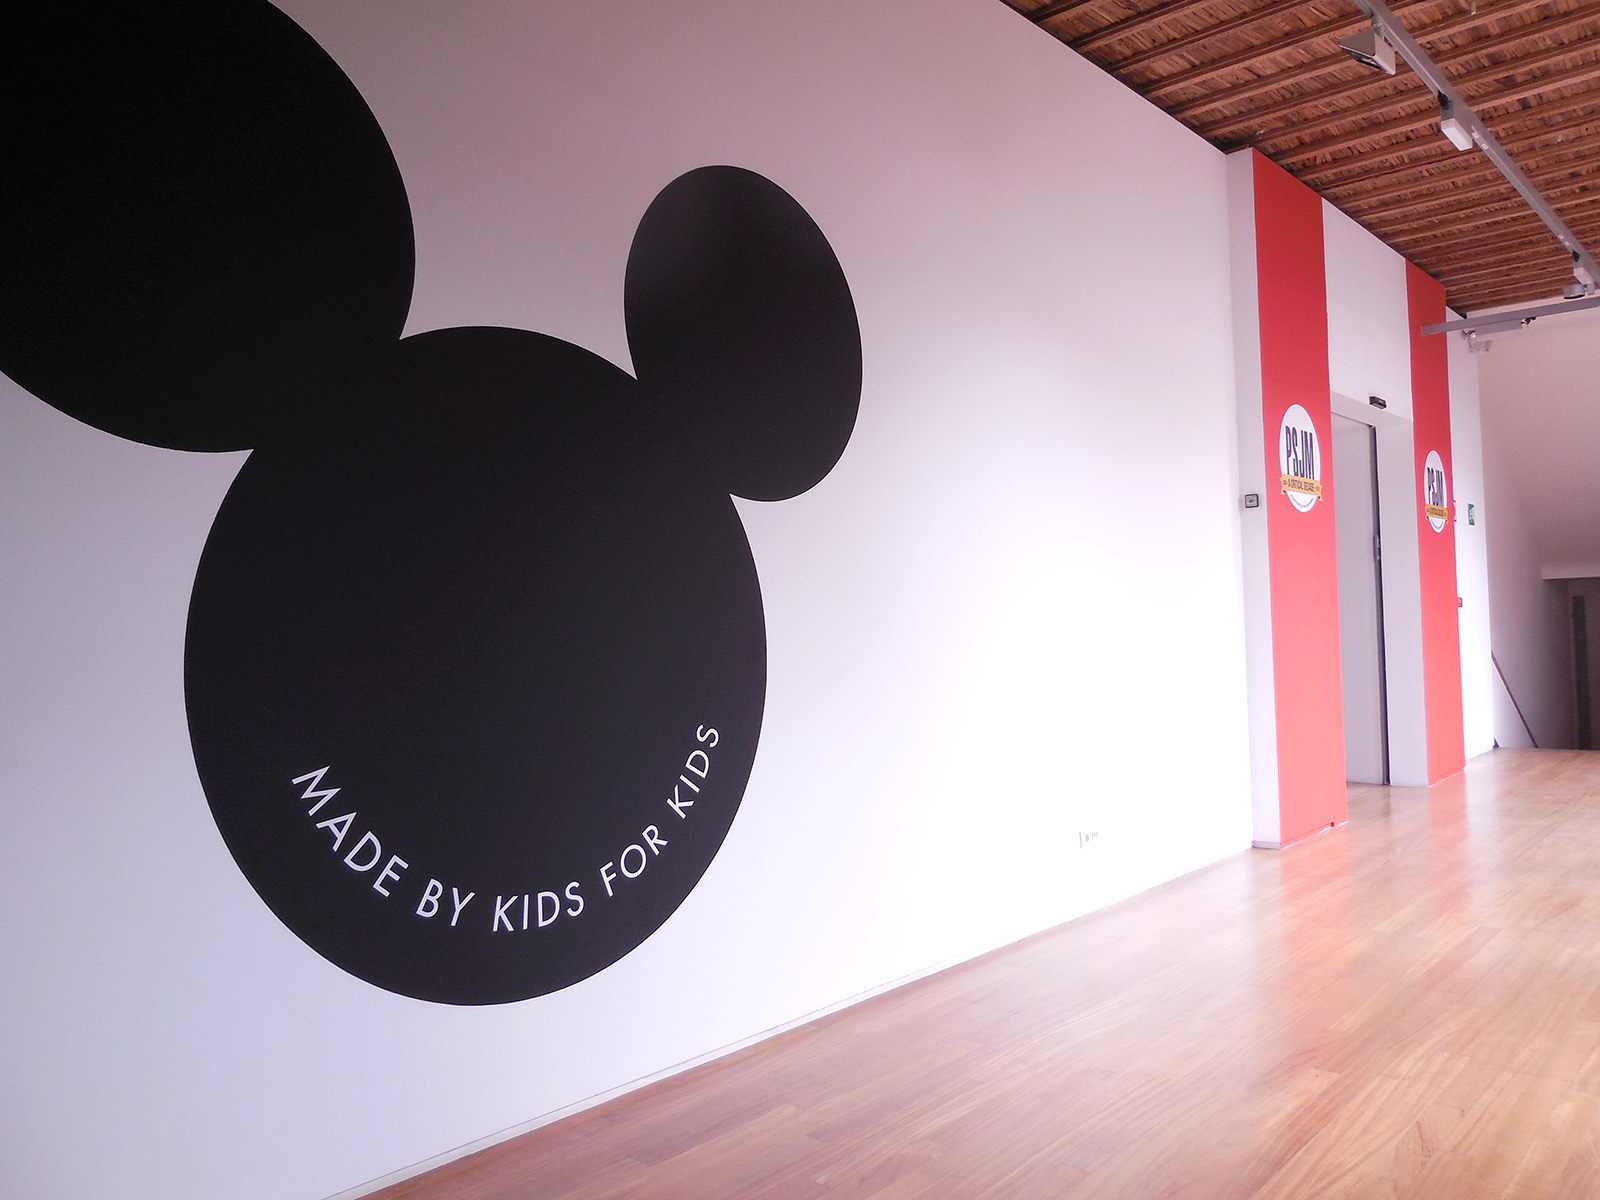 «Made by kids for kids», 2007, Mural installation, Variable dimensions.